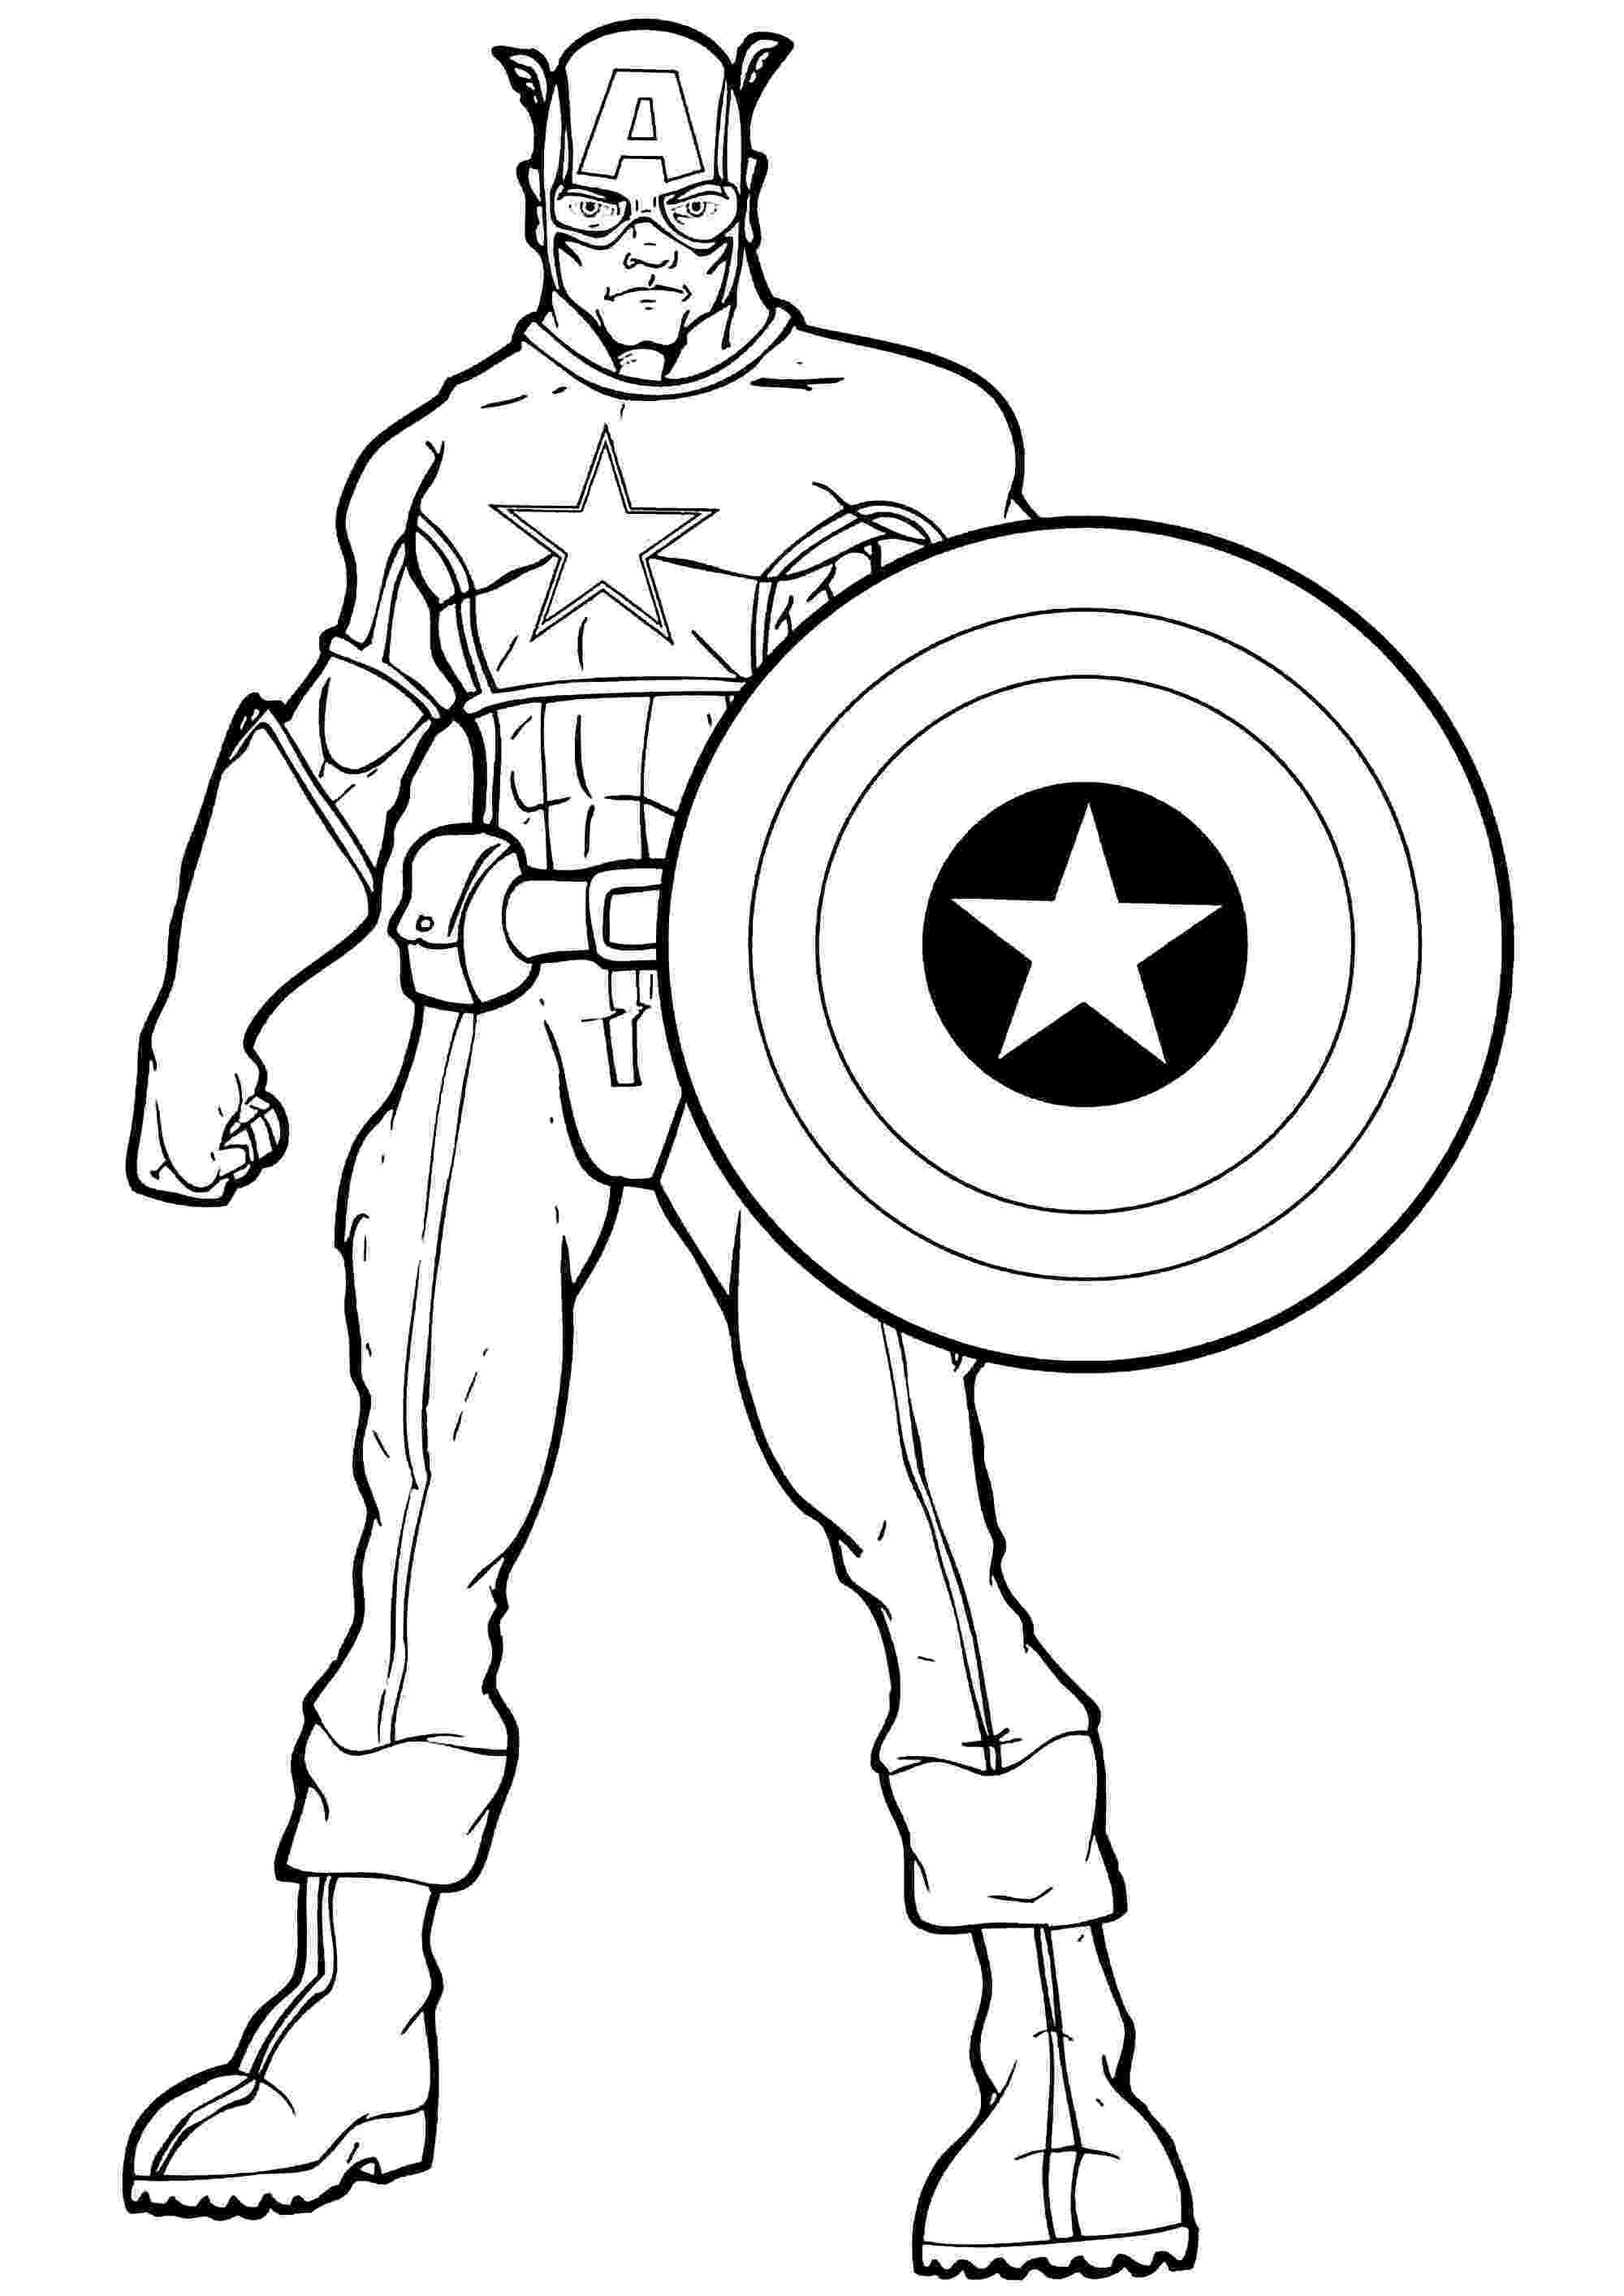 captain america colouring pages kids n funcom 22 coloring pages of captain america america captain pages colouring